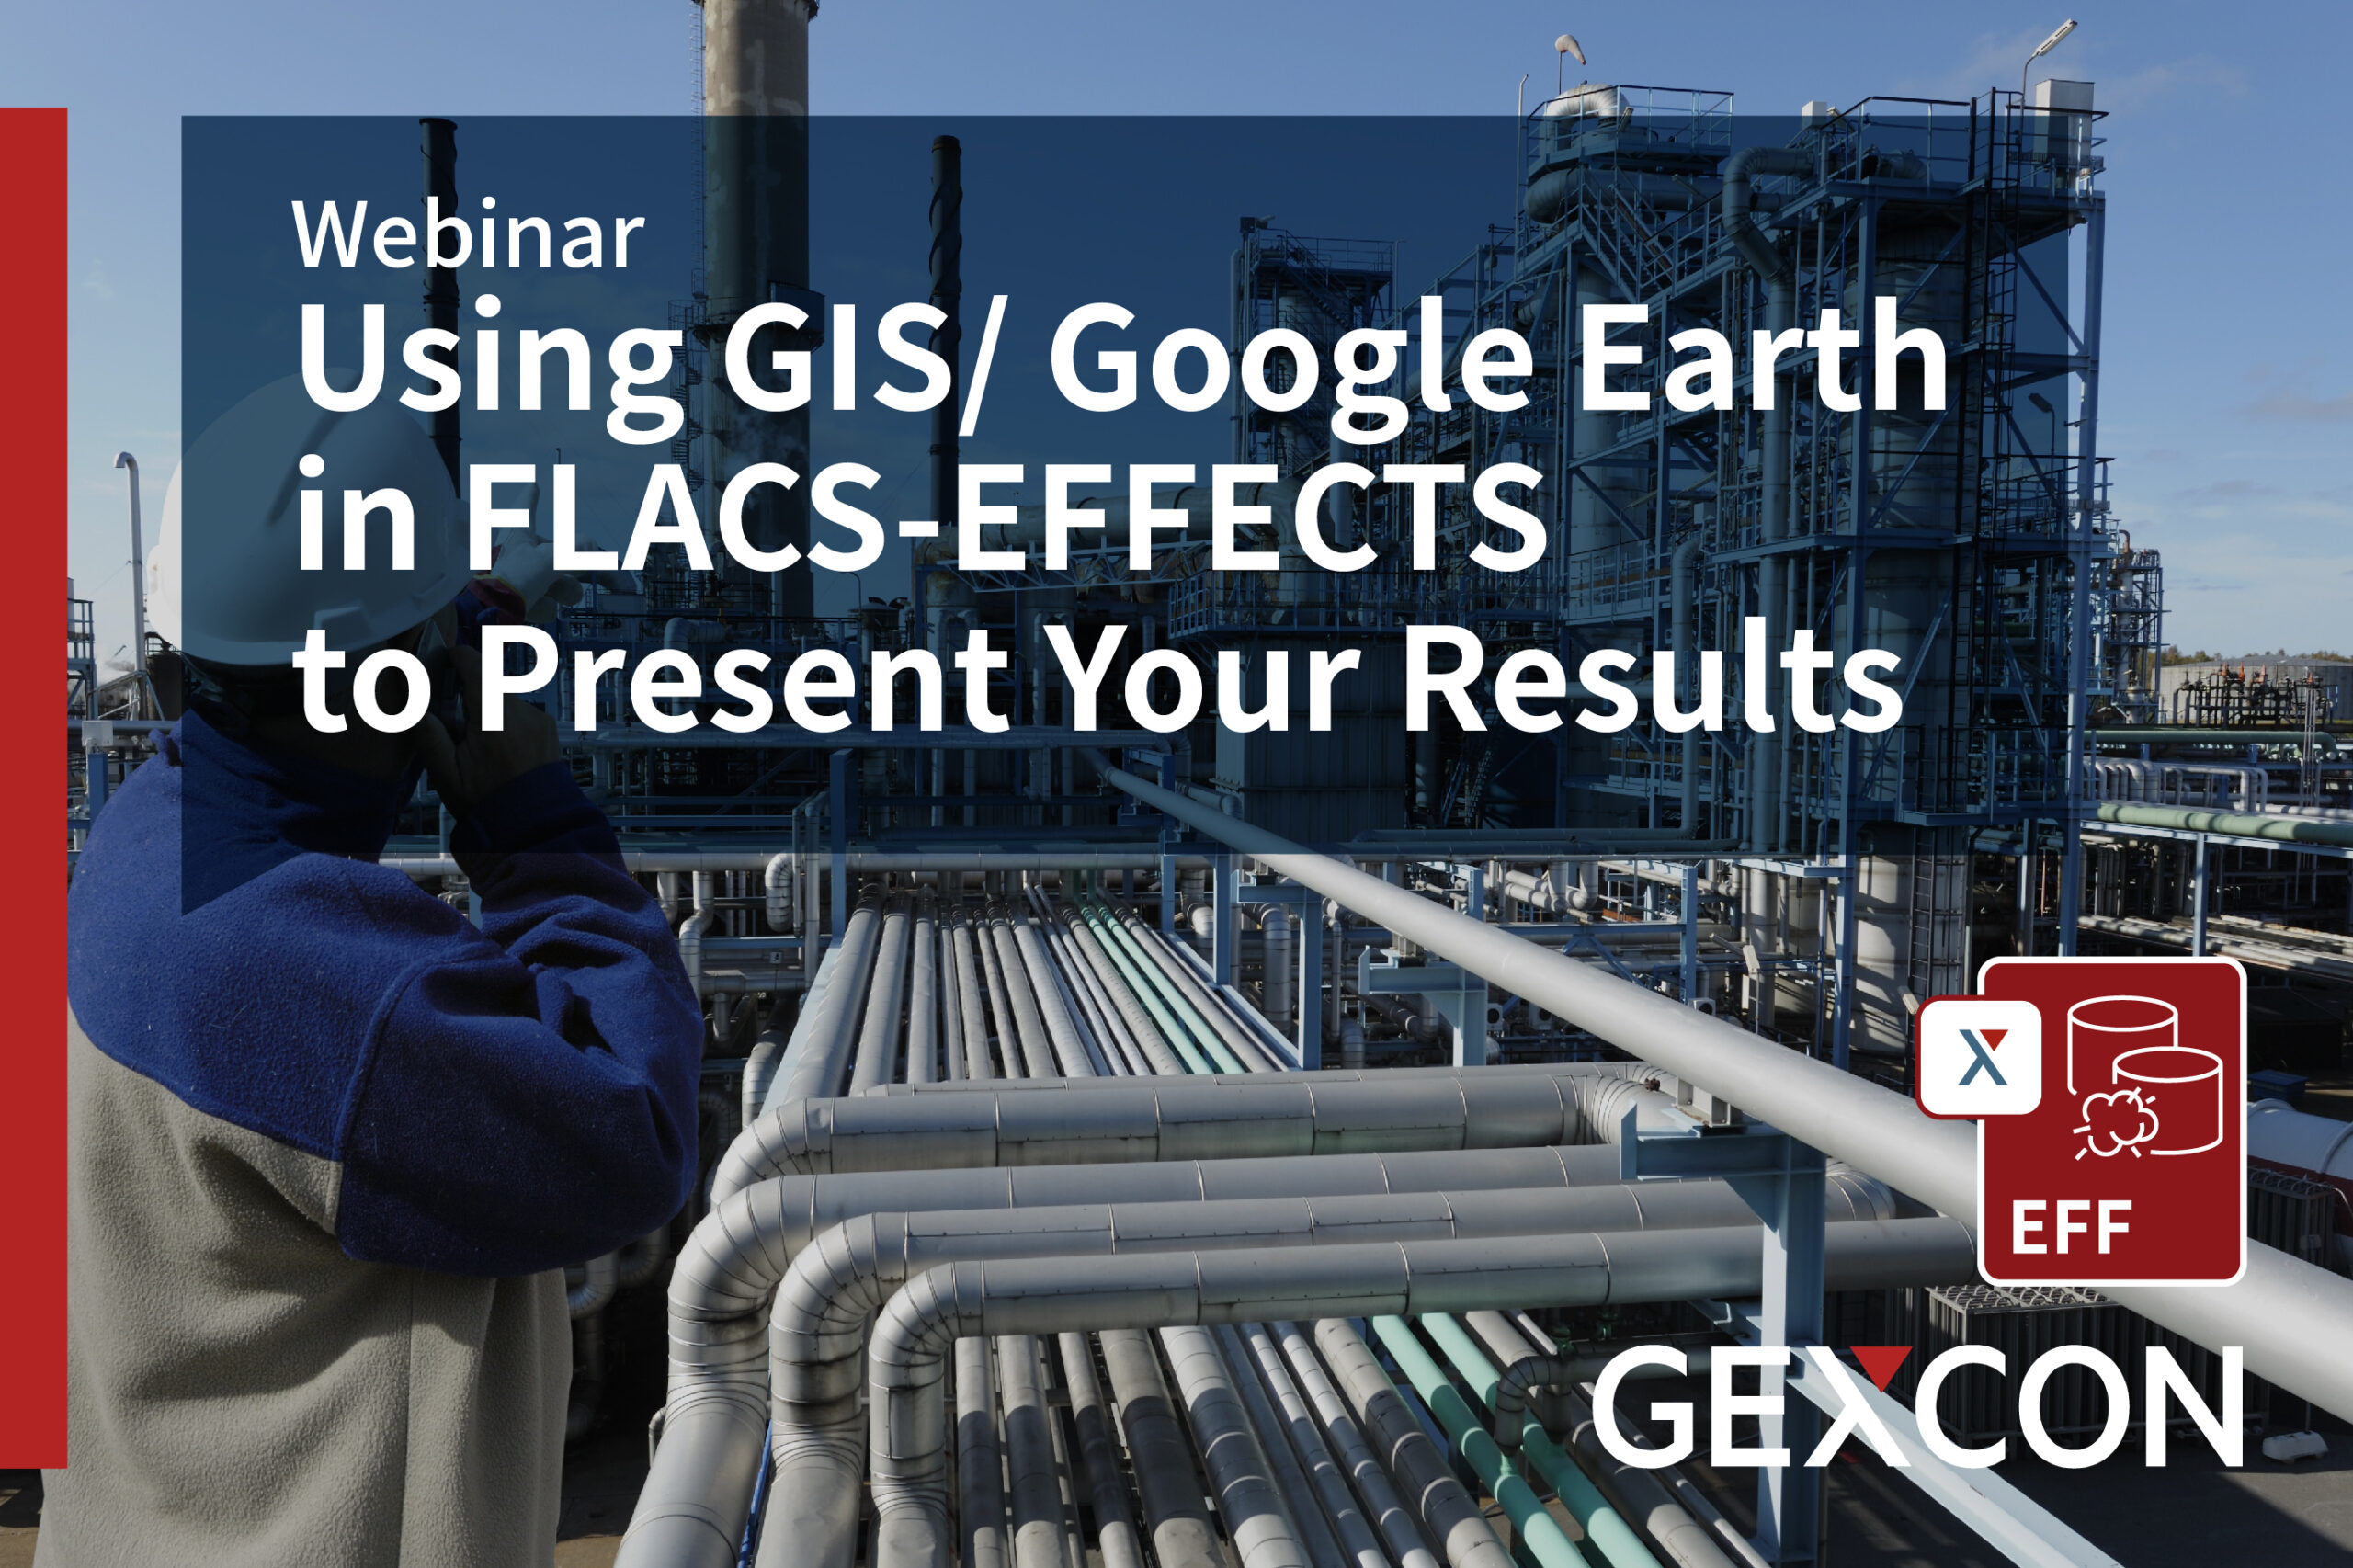 Webinar - Using GIS/ Google Earth in FLACS-EFFECTS to Present Your Results